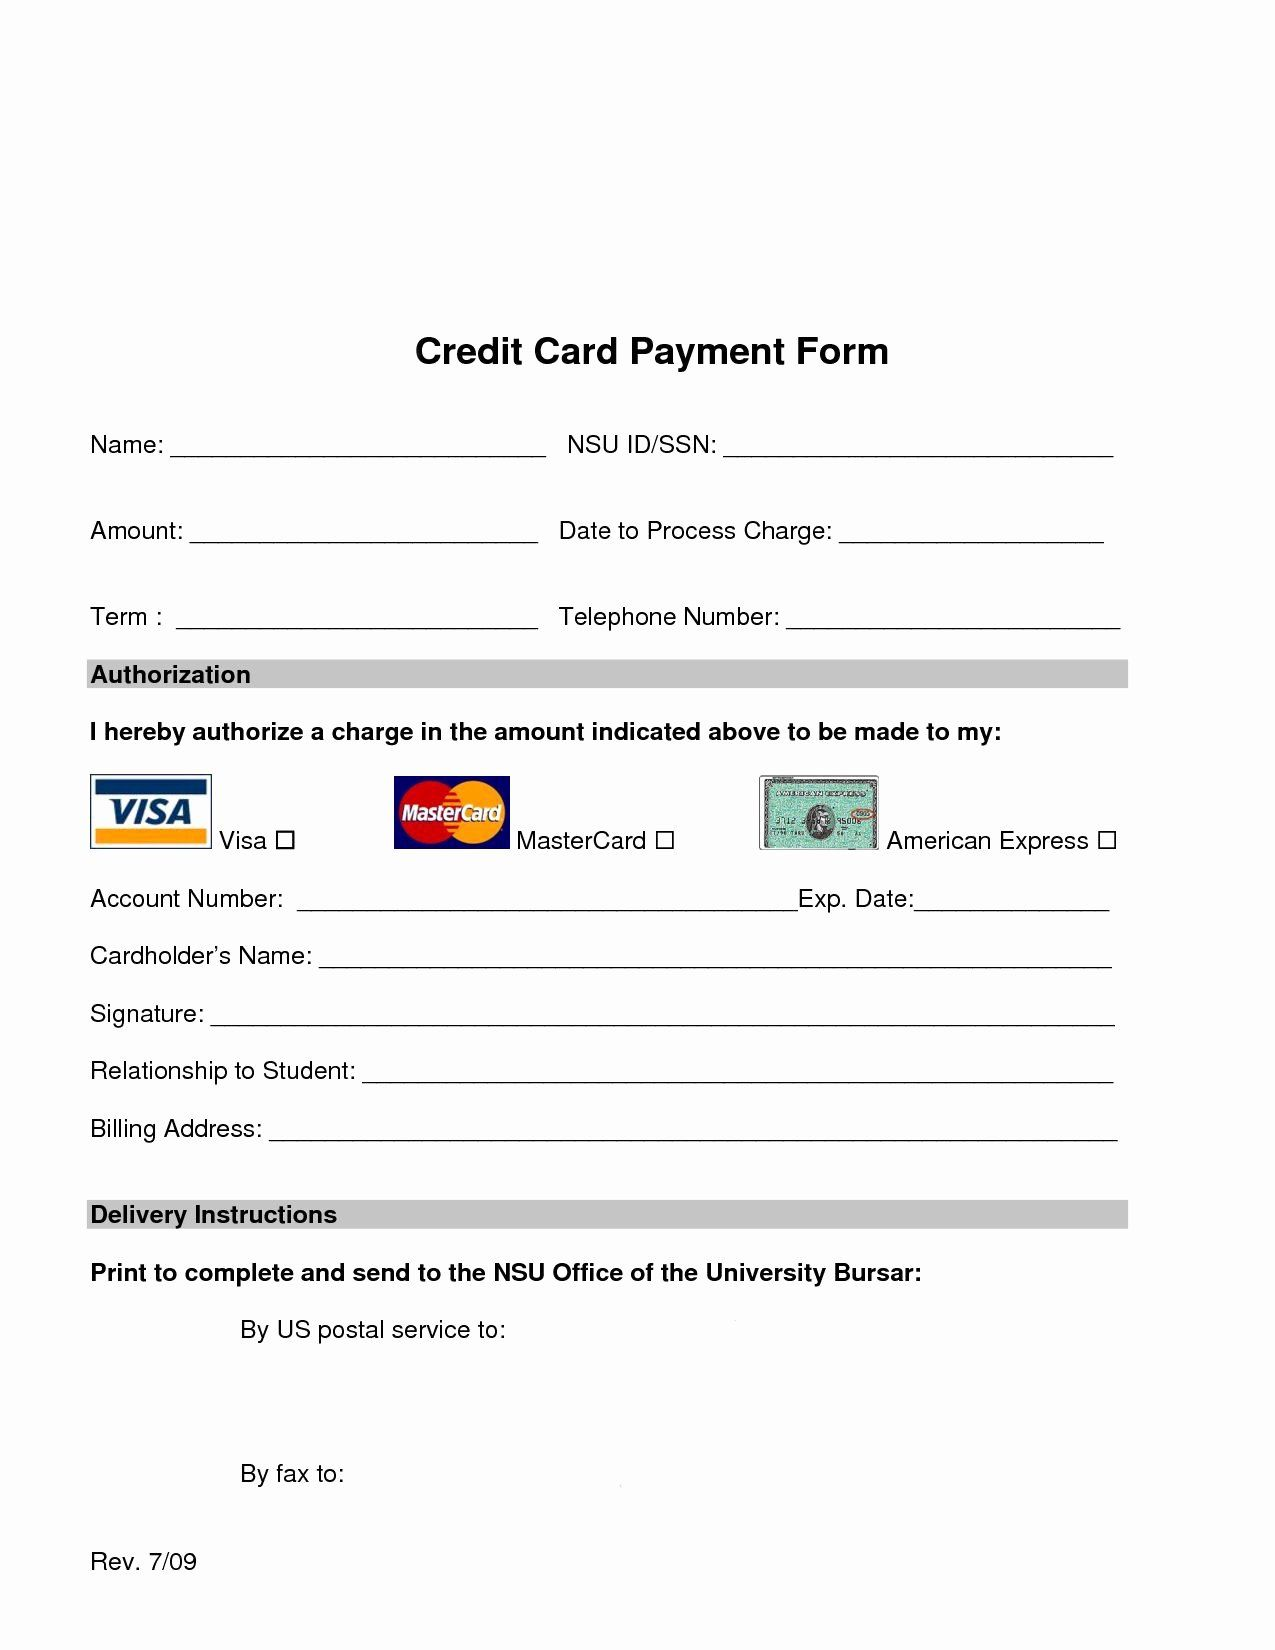 Credit Card Authorization Form Word Fresh Credit Card Processing Form Web Design Credit Card Images Free Credit Card Credit Card Design